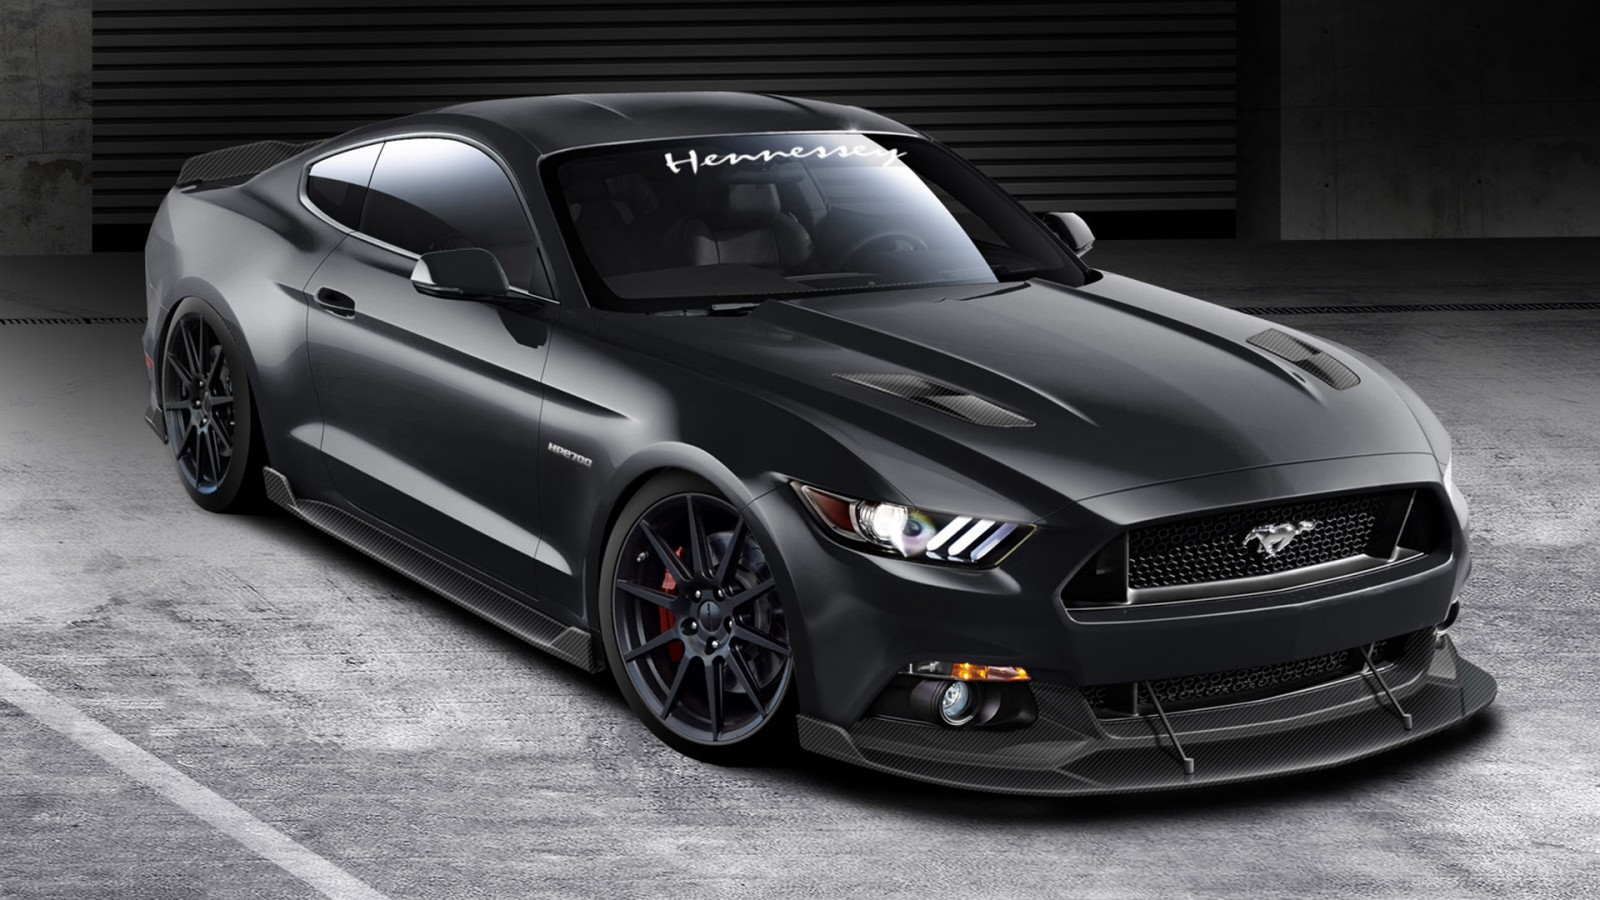 2015 Hennessey Ford Mustang GT Wallpaper | HD Car ...